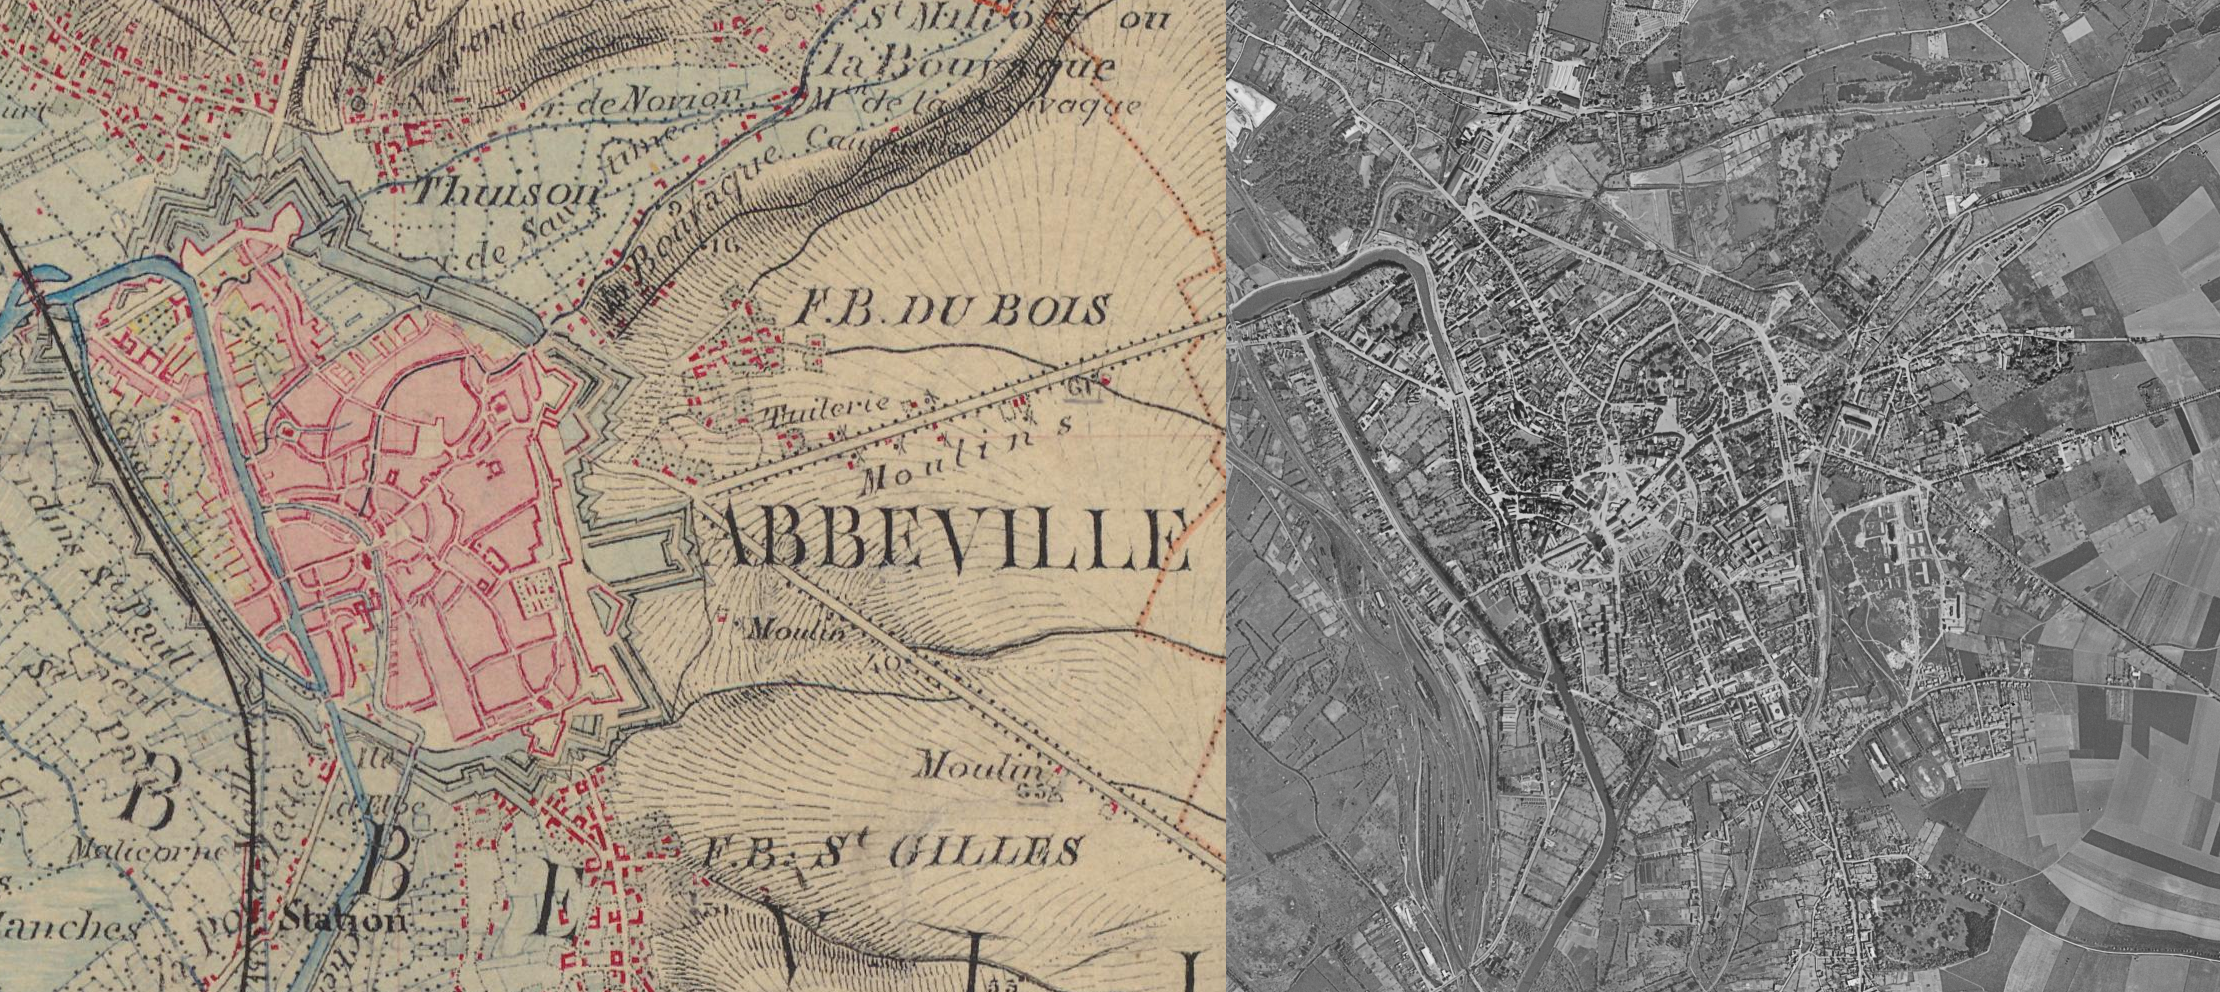 Abbeville (1850-1950)